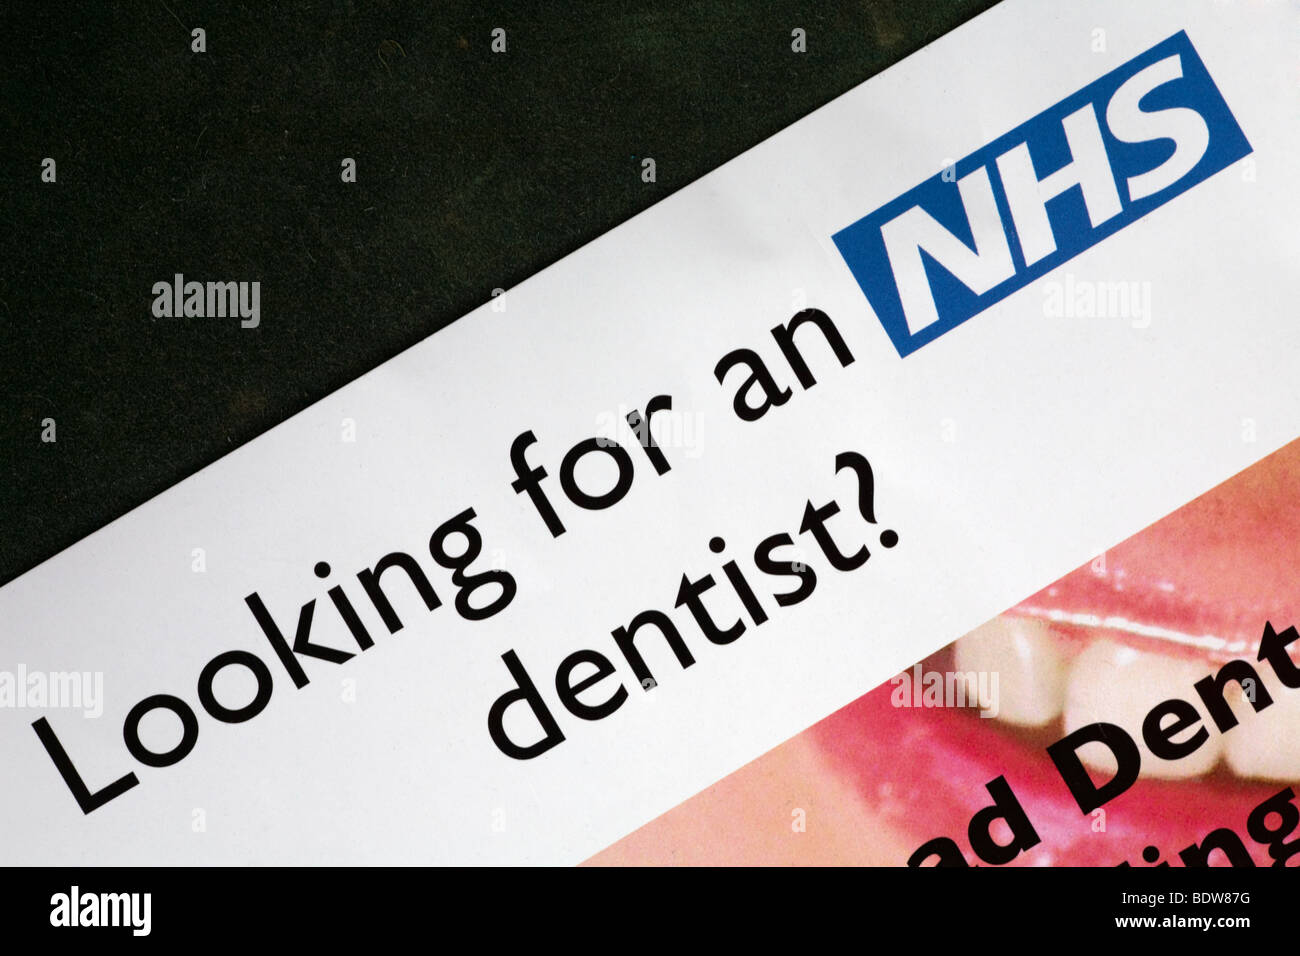 Looking for an NHS dentist leaflet - Stock Image